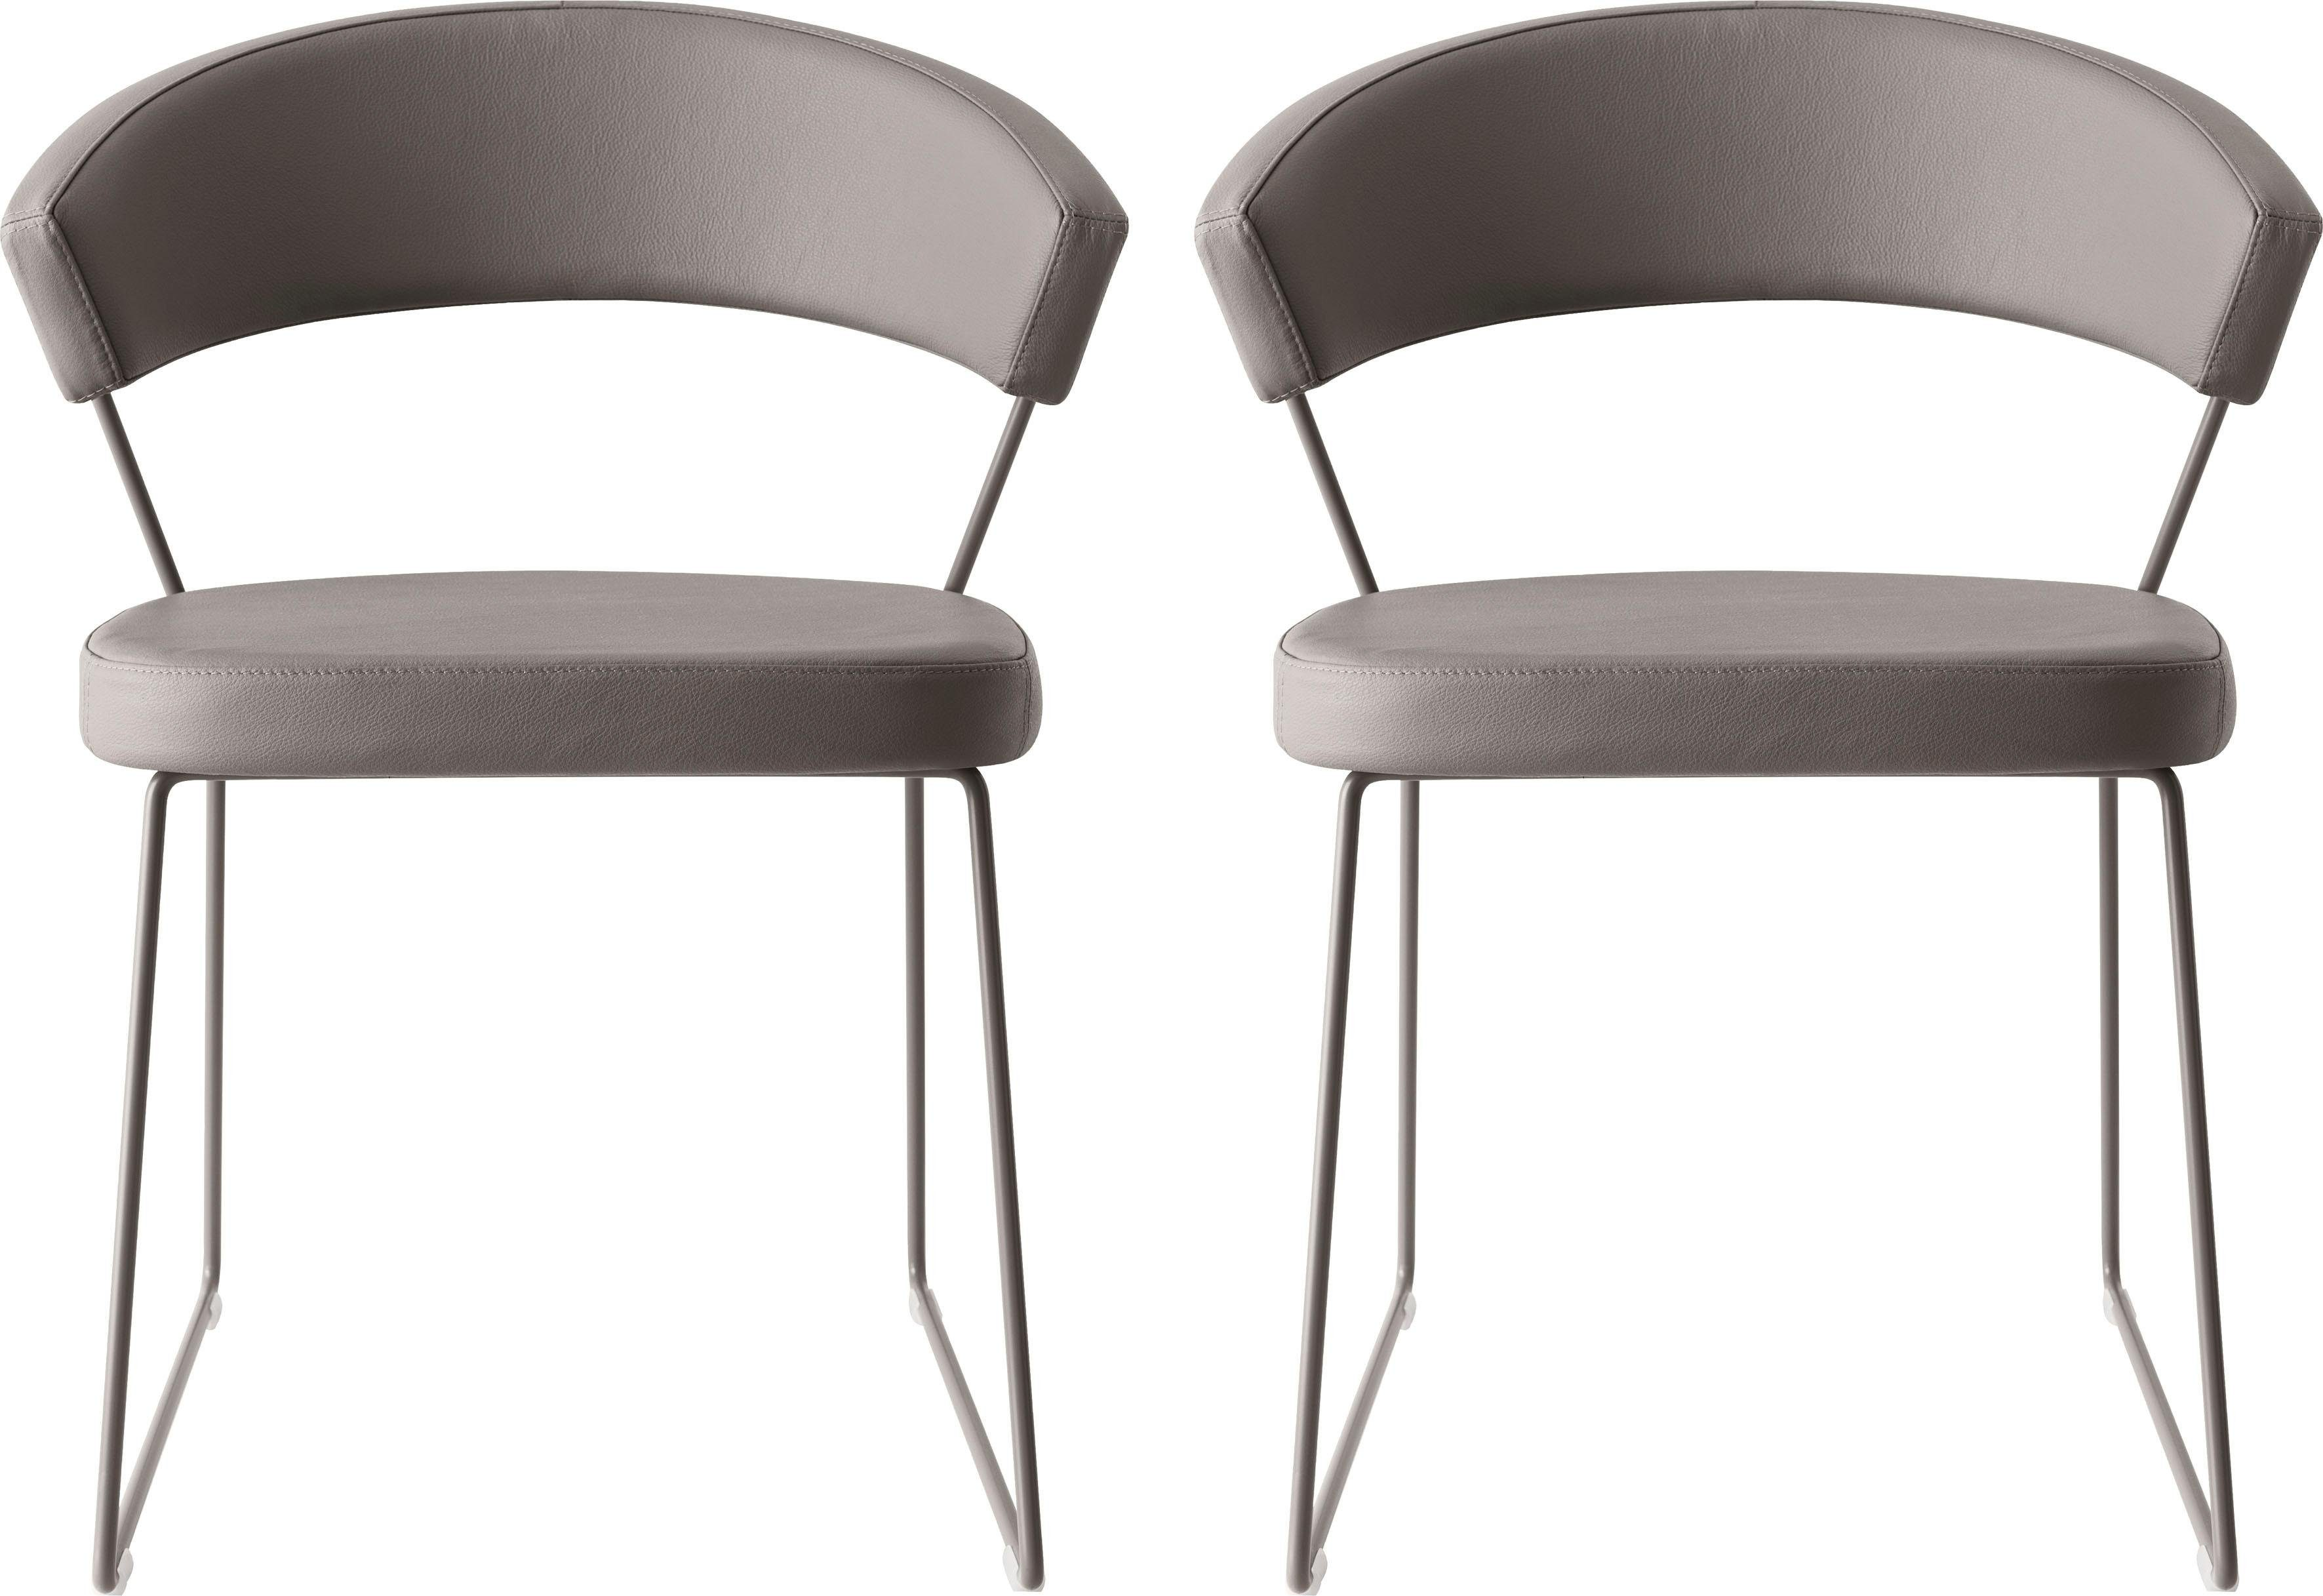 connubia by calligaris Stühle »New York CB1022-LH«, 2 Stck.